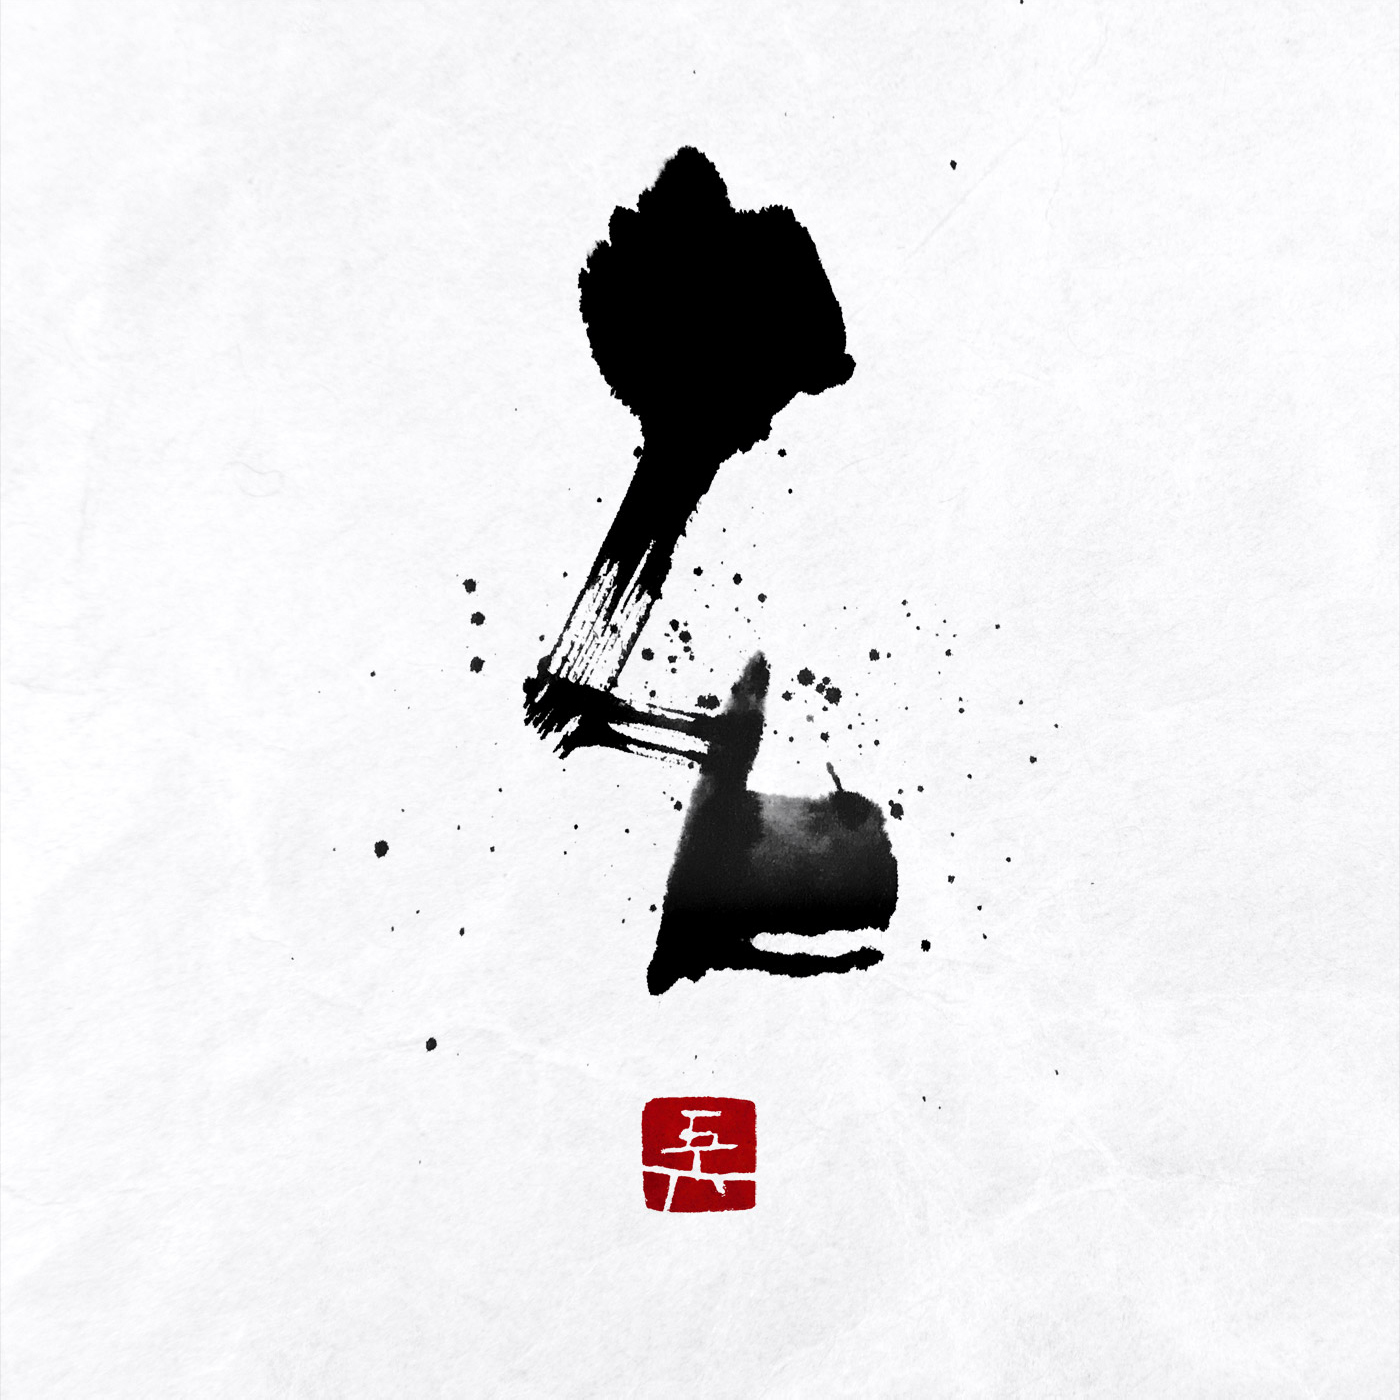 玄 black, profound 書道作品 japaneseart japanese calligraphy 書家 田川悟郎 Goroh Tagawa